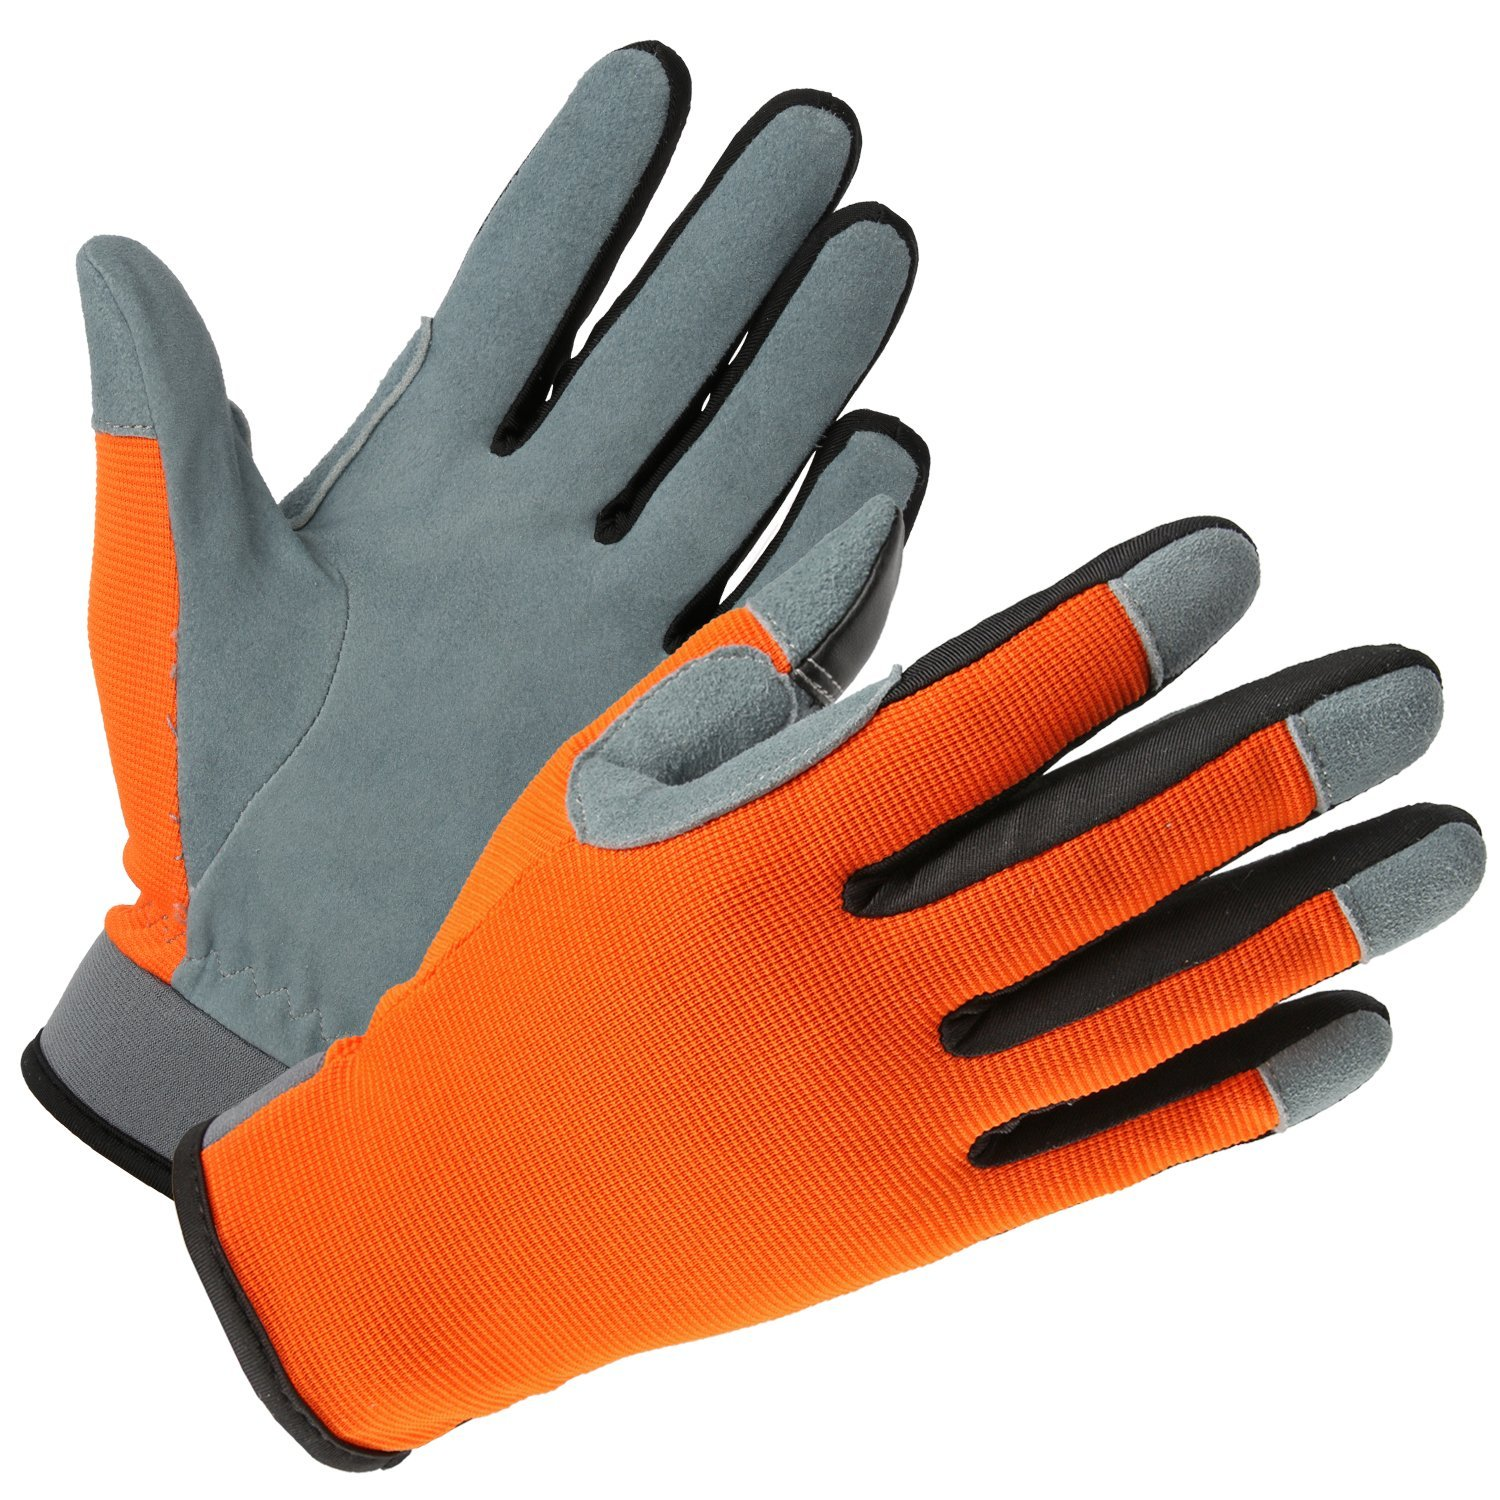 OZERO Leather Gloves, Touch Screen Garden Work Gloves, Mens and Womens, 1 Pair SHENZHEN HONGFUYA TRADE Co. Ltd